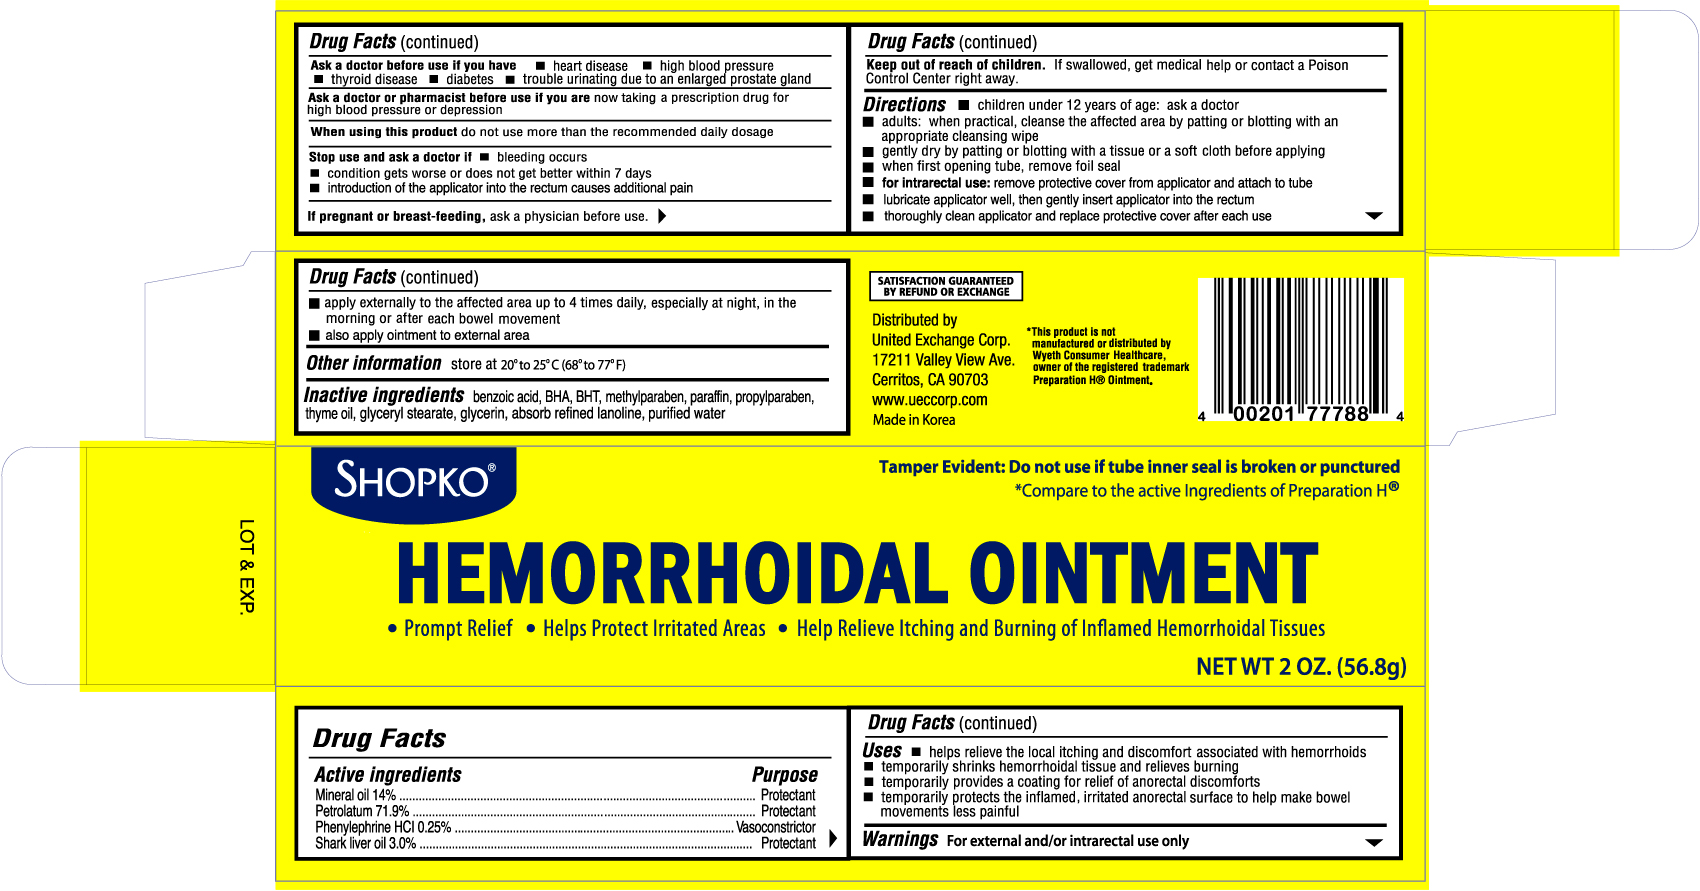 Shopko Hemorrhoidal (Mineral Oil,petrolatum,phenylephrine,shark Liver Oil) Ointment [United Exchange Corp.]